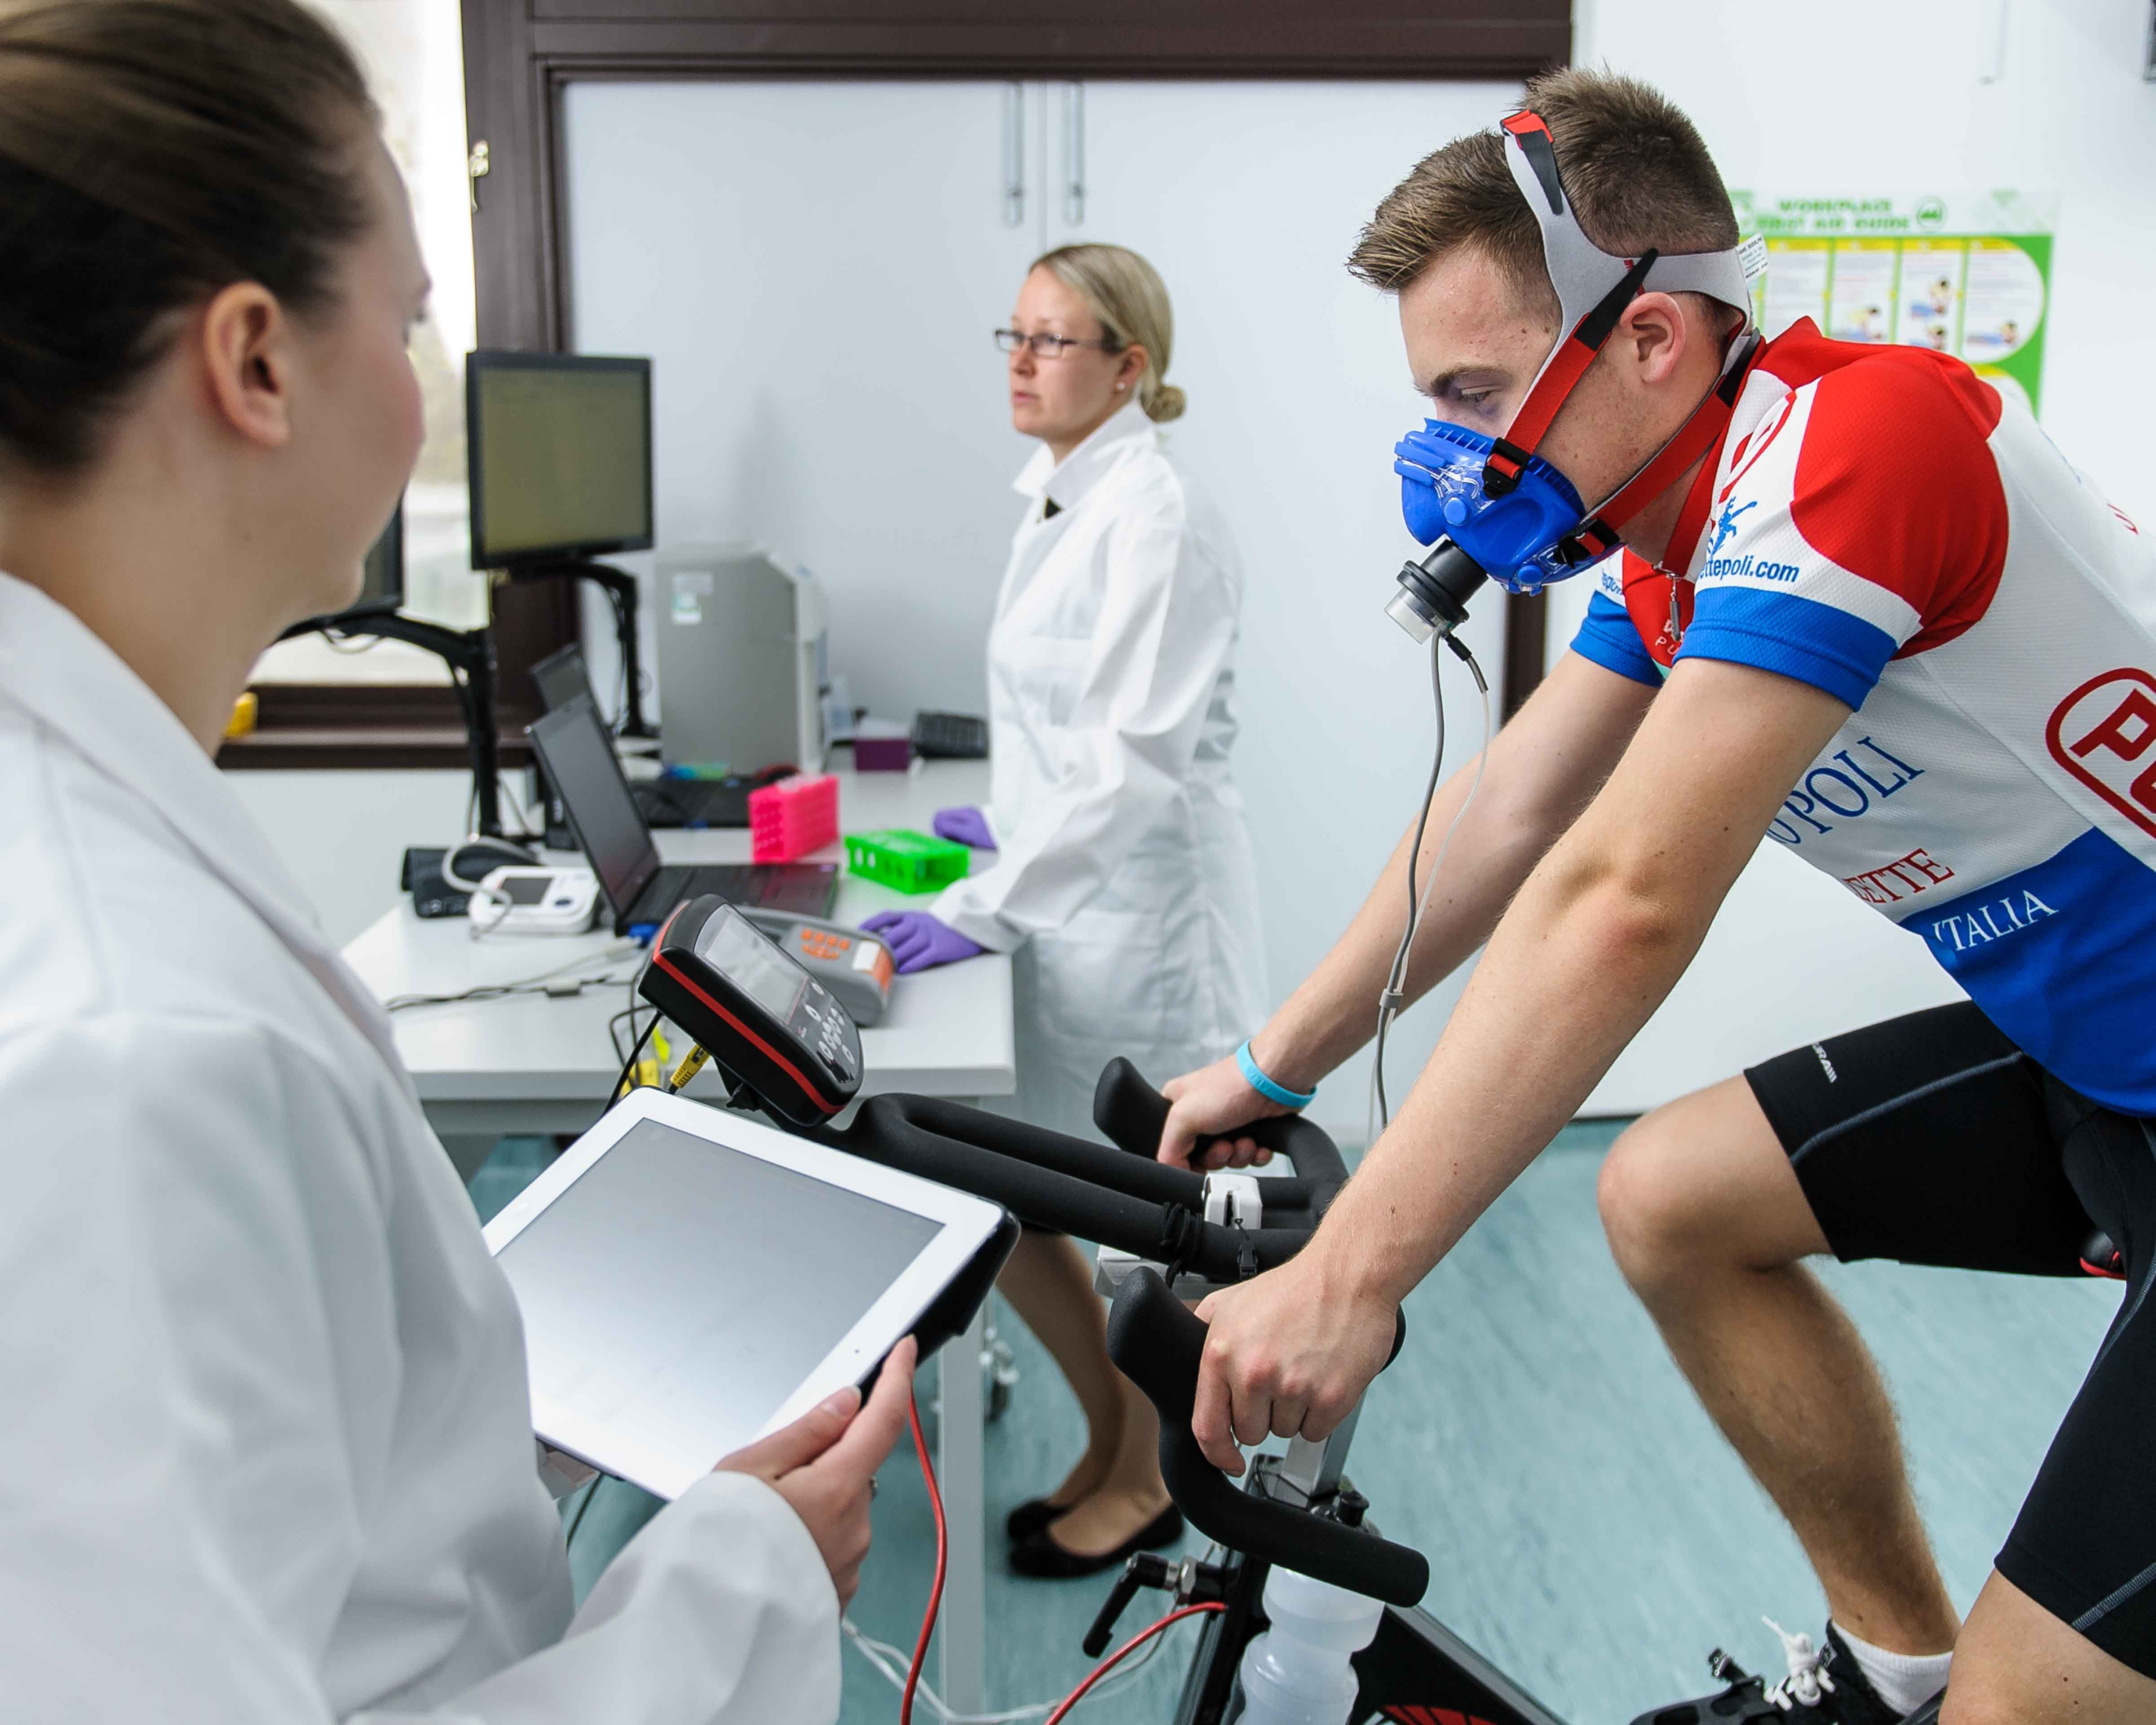 This image shows a man wearing a breathing mask whilst using an exercise bike and being monitored by scientists.